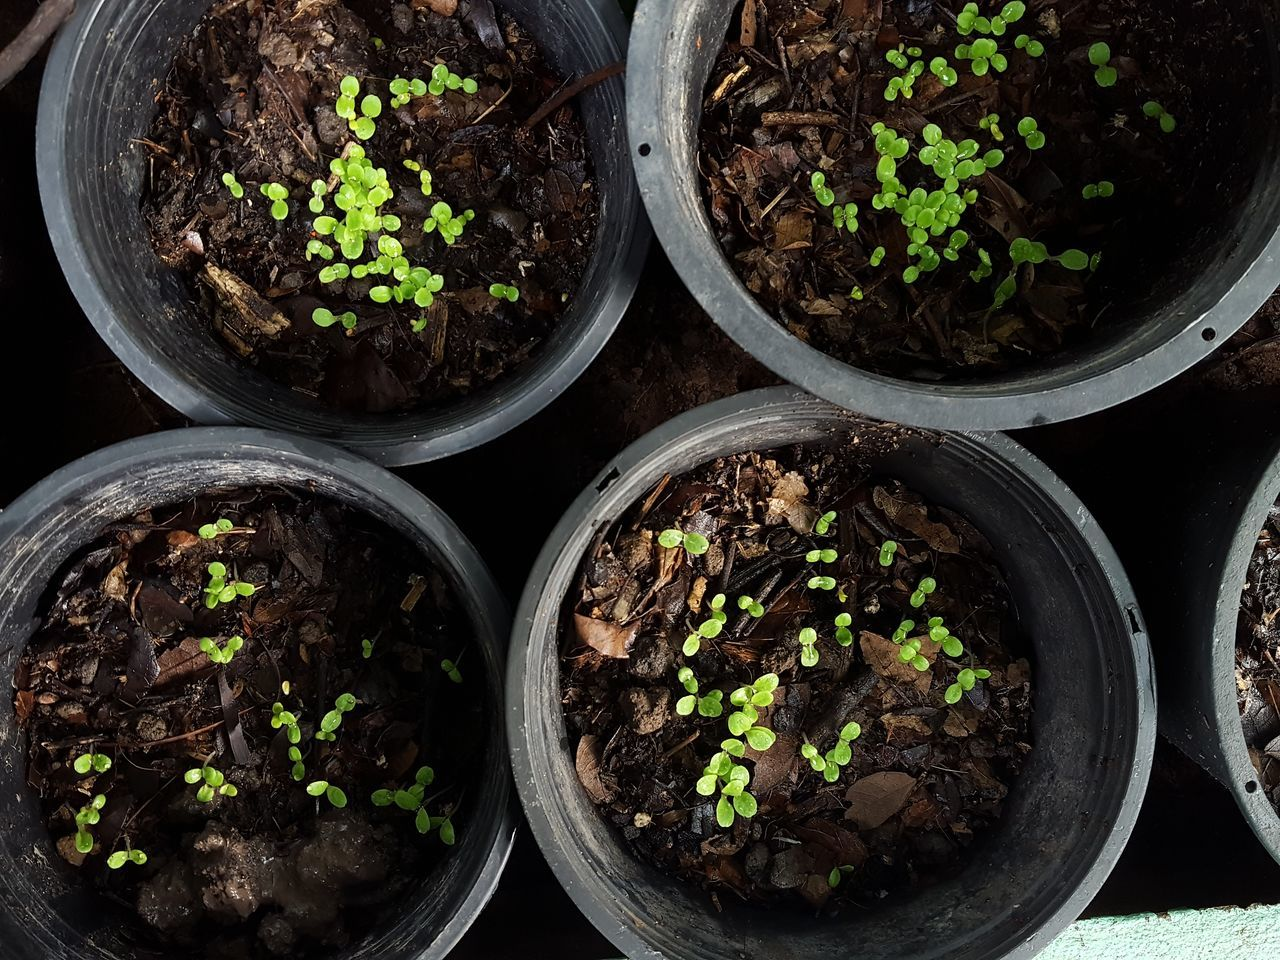 growth, potted plant, plant, green color, sapling, nature, no people, planting, close-up, fragility, day, indoors, greenhouse